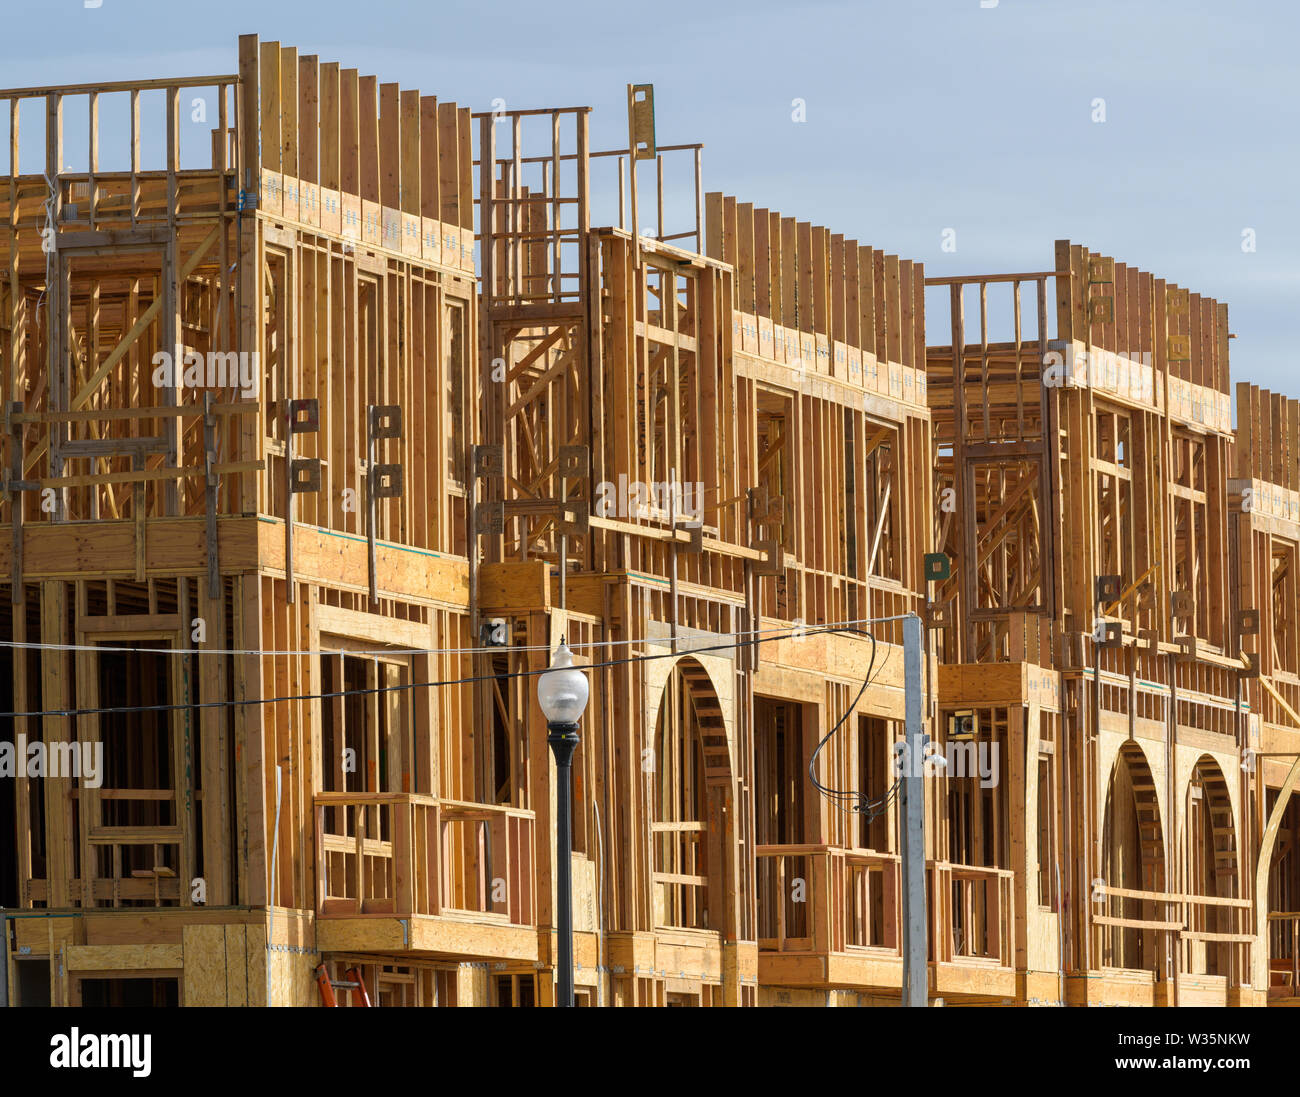 An apartment building under construction on sunny day on blue sky background Stock Photo